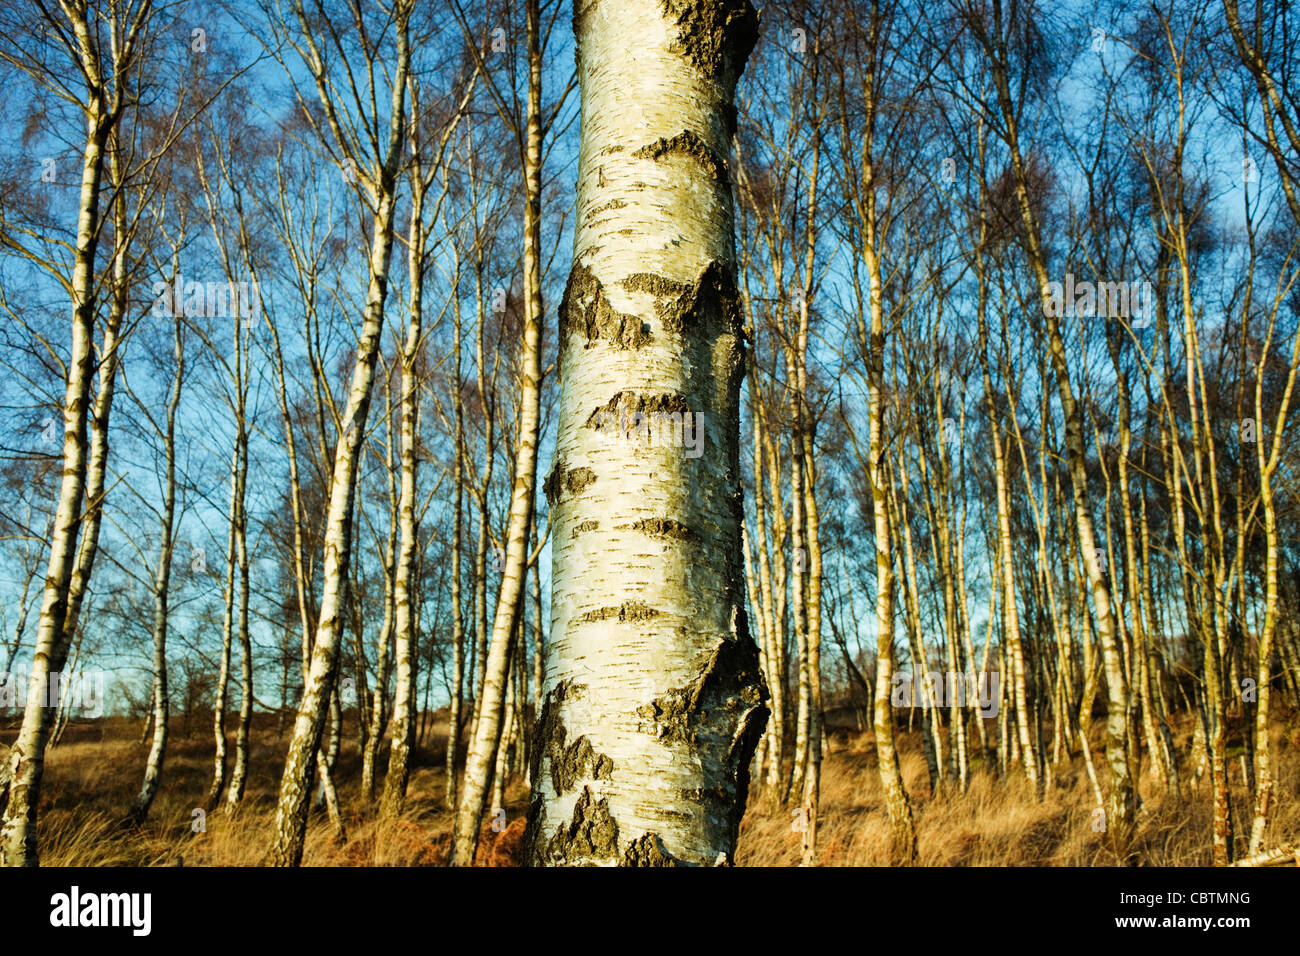 Silver birch trees in woodland on Iping Common, West Sussex, England on a fine sunny day with foreground bark detail - Stock Image